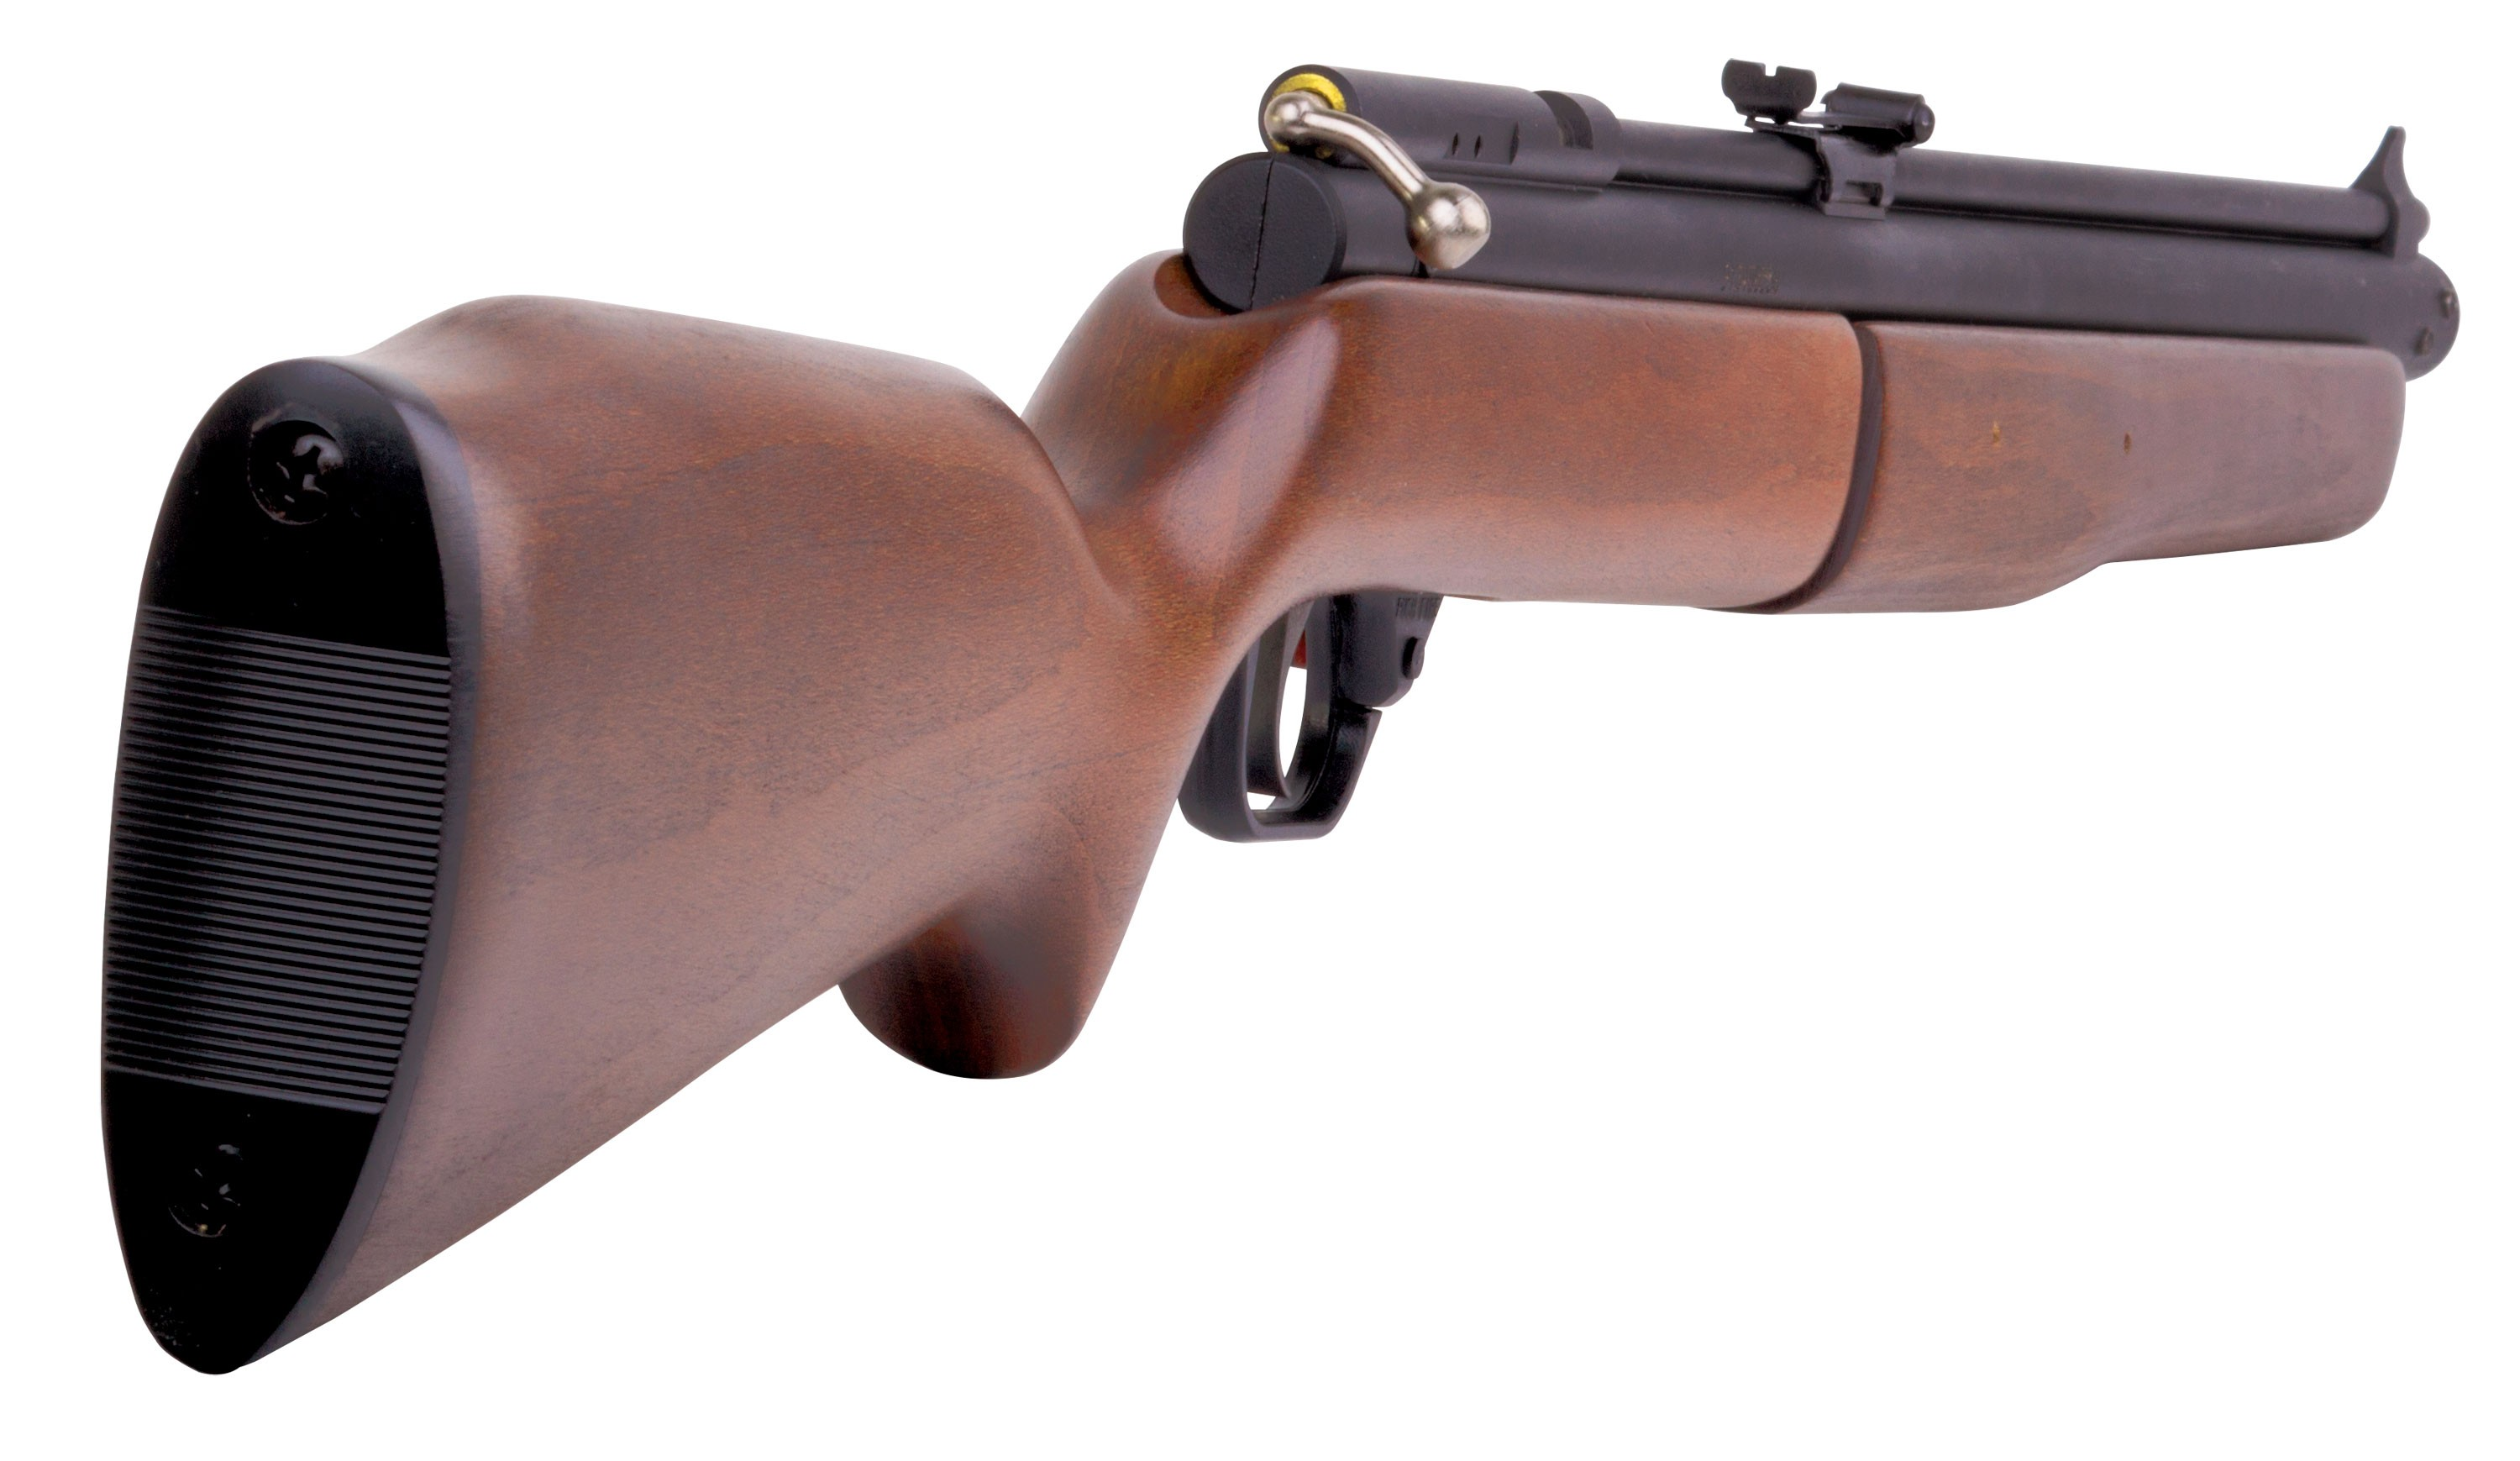 Honest crosman benjamin air rifle review gun